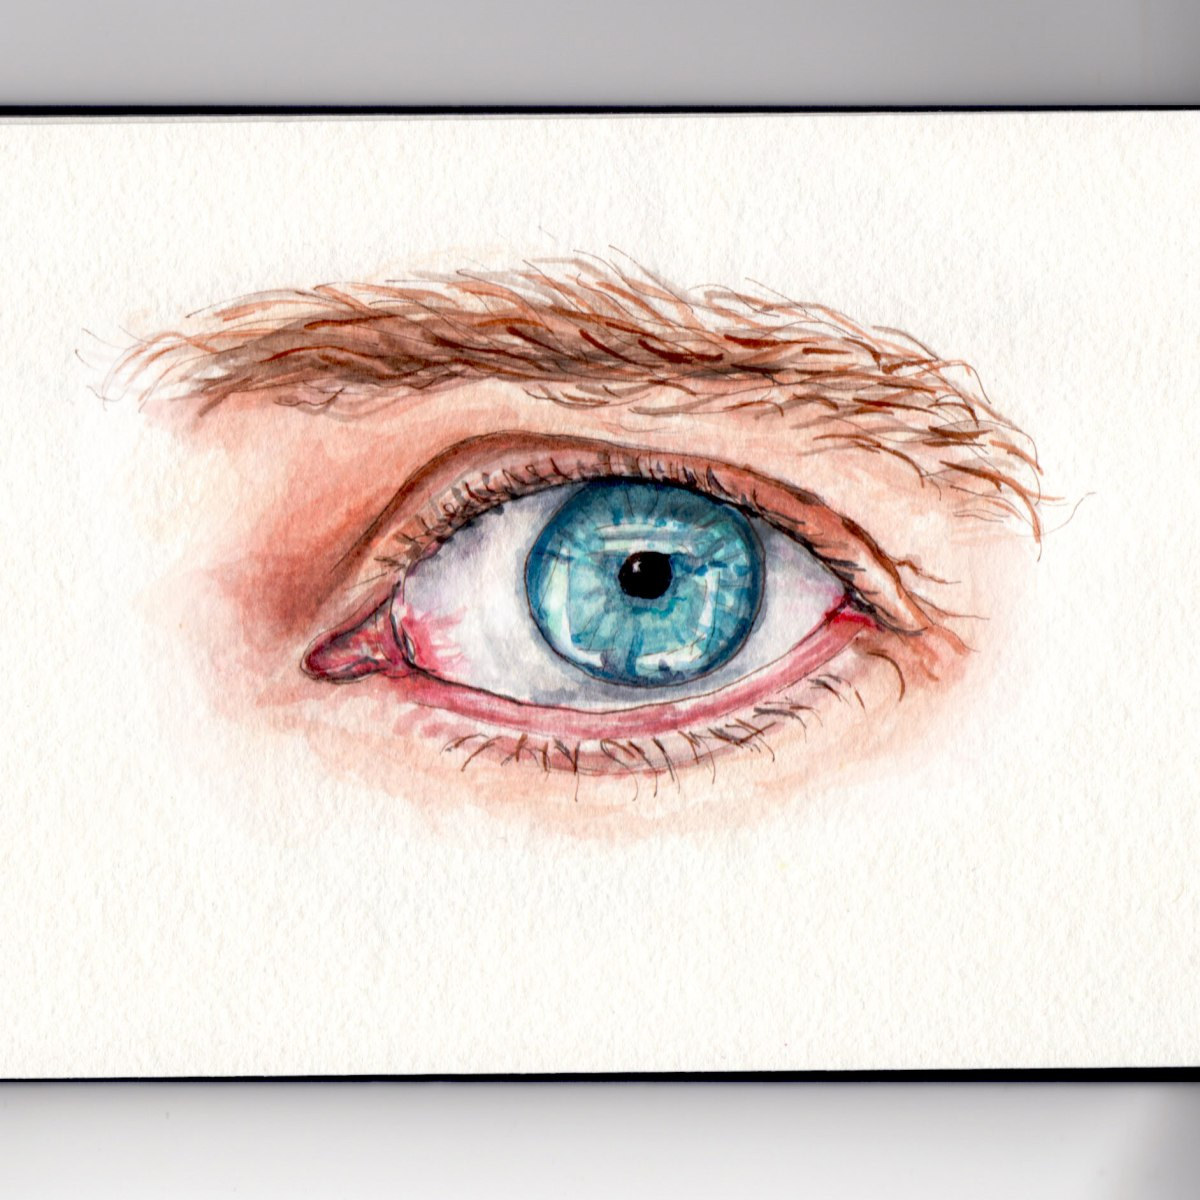 Day 25 #WorldWatercolorGroup My Favorite Body Part Blue Eye Macro Watercolor Sketch